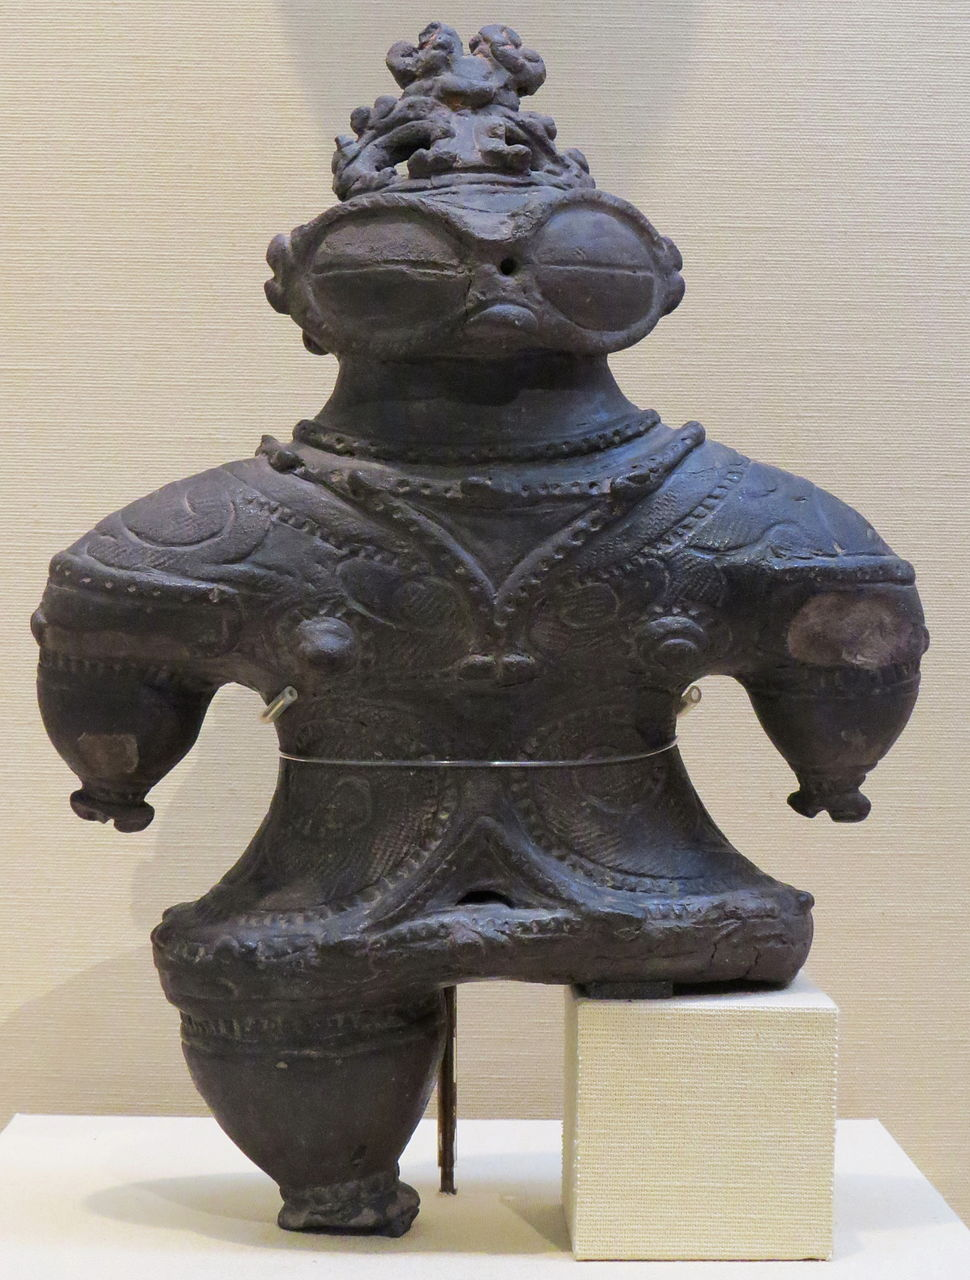 Stone statue, late Jomon period